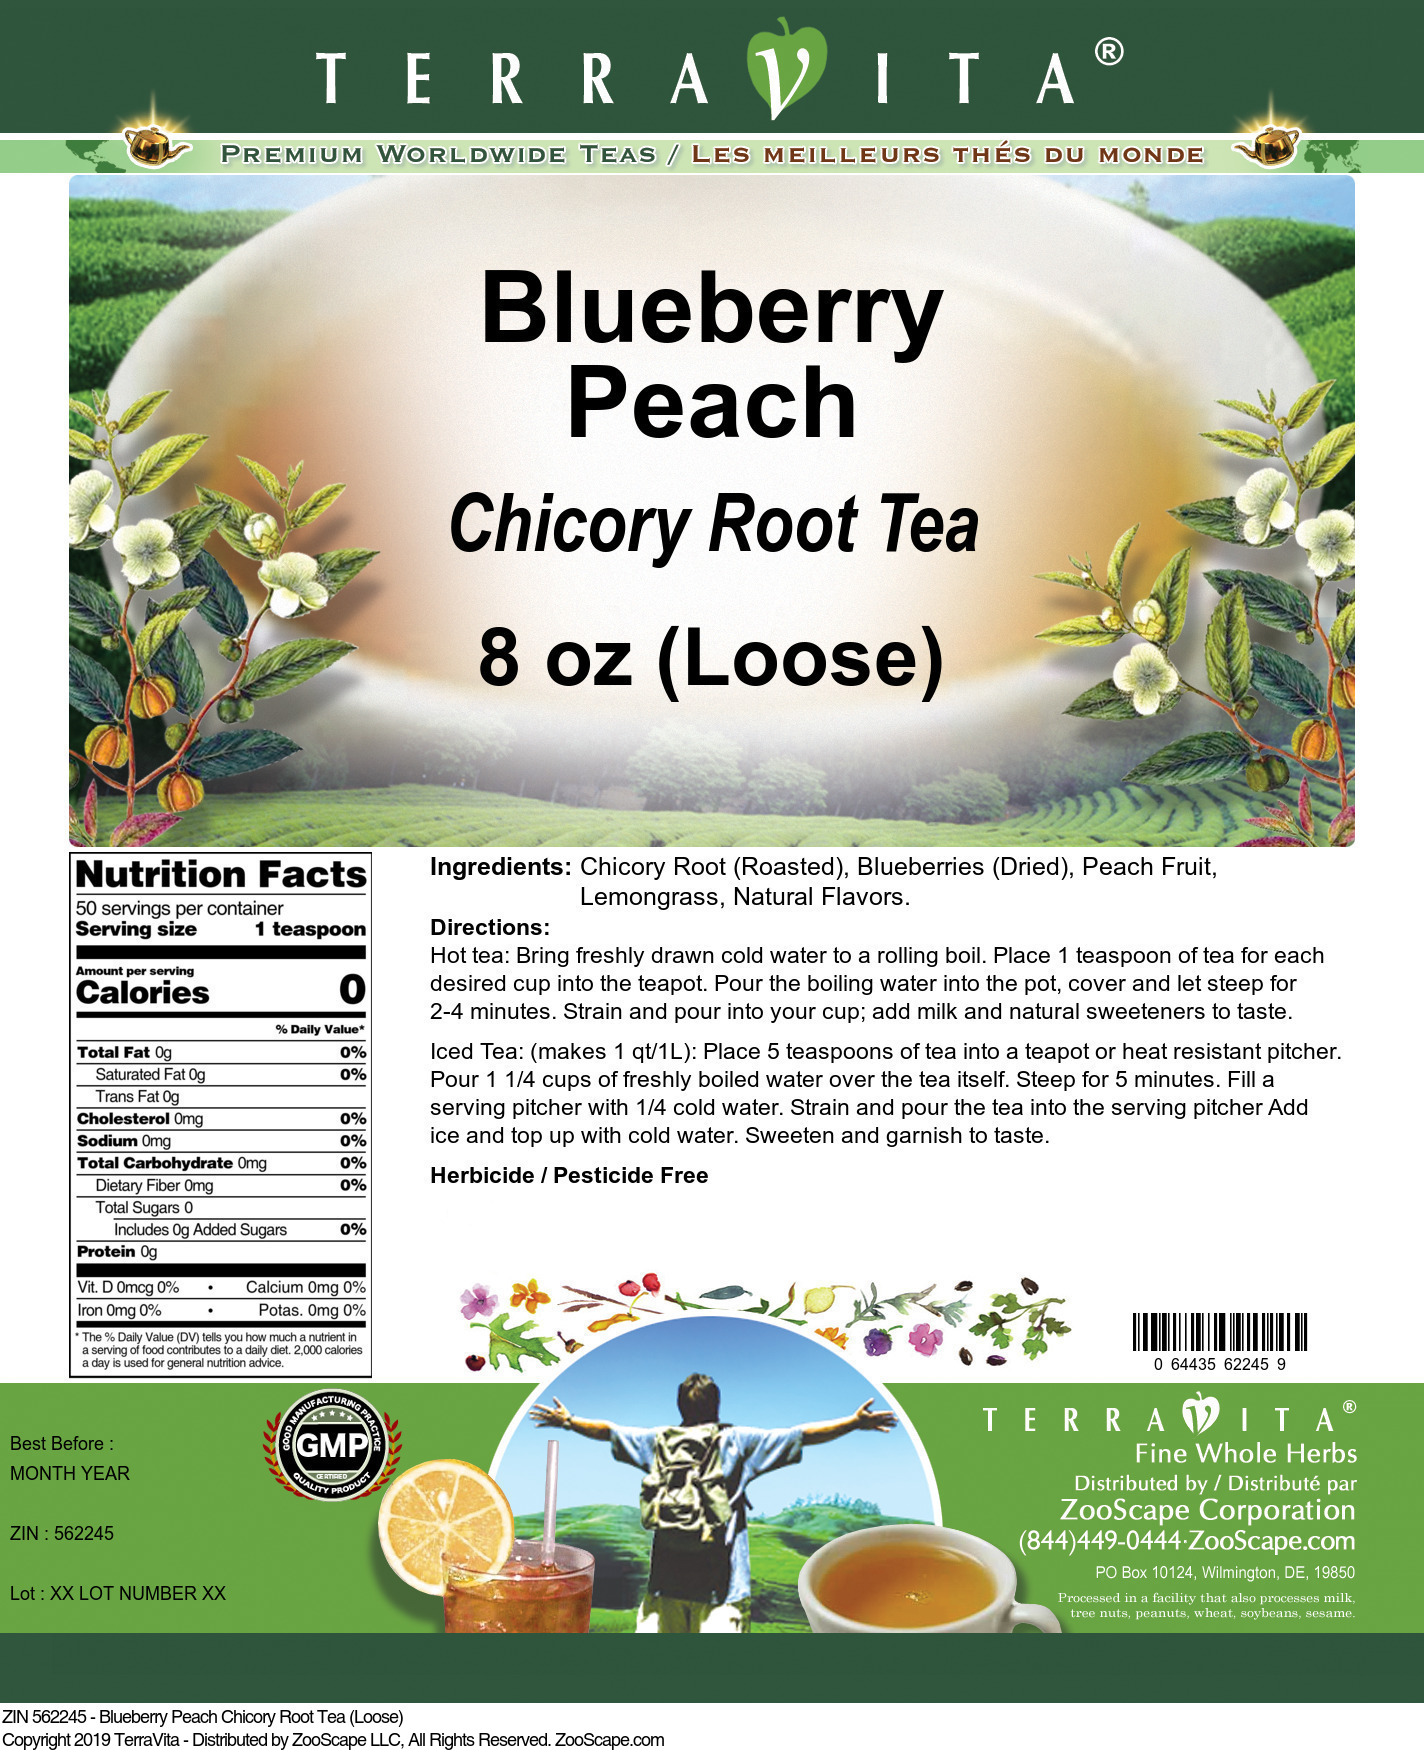 Blueberry Peach Chicory Root Tea (Loose)